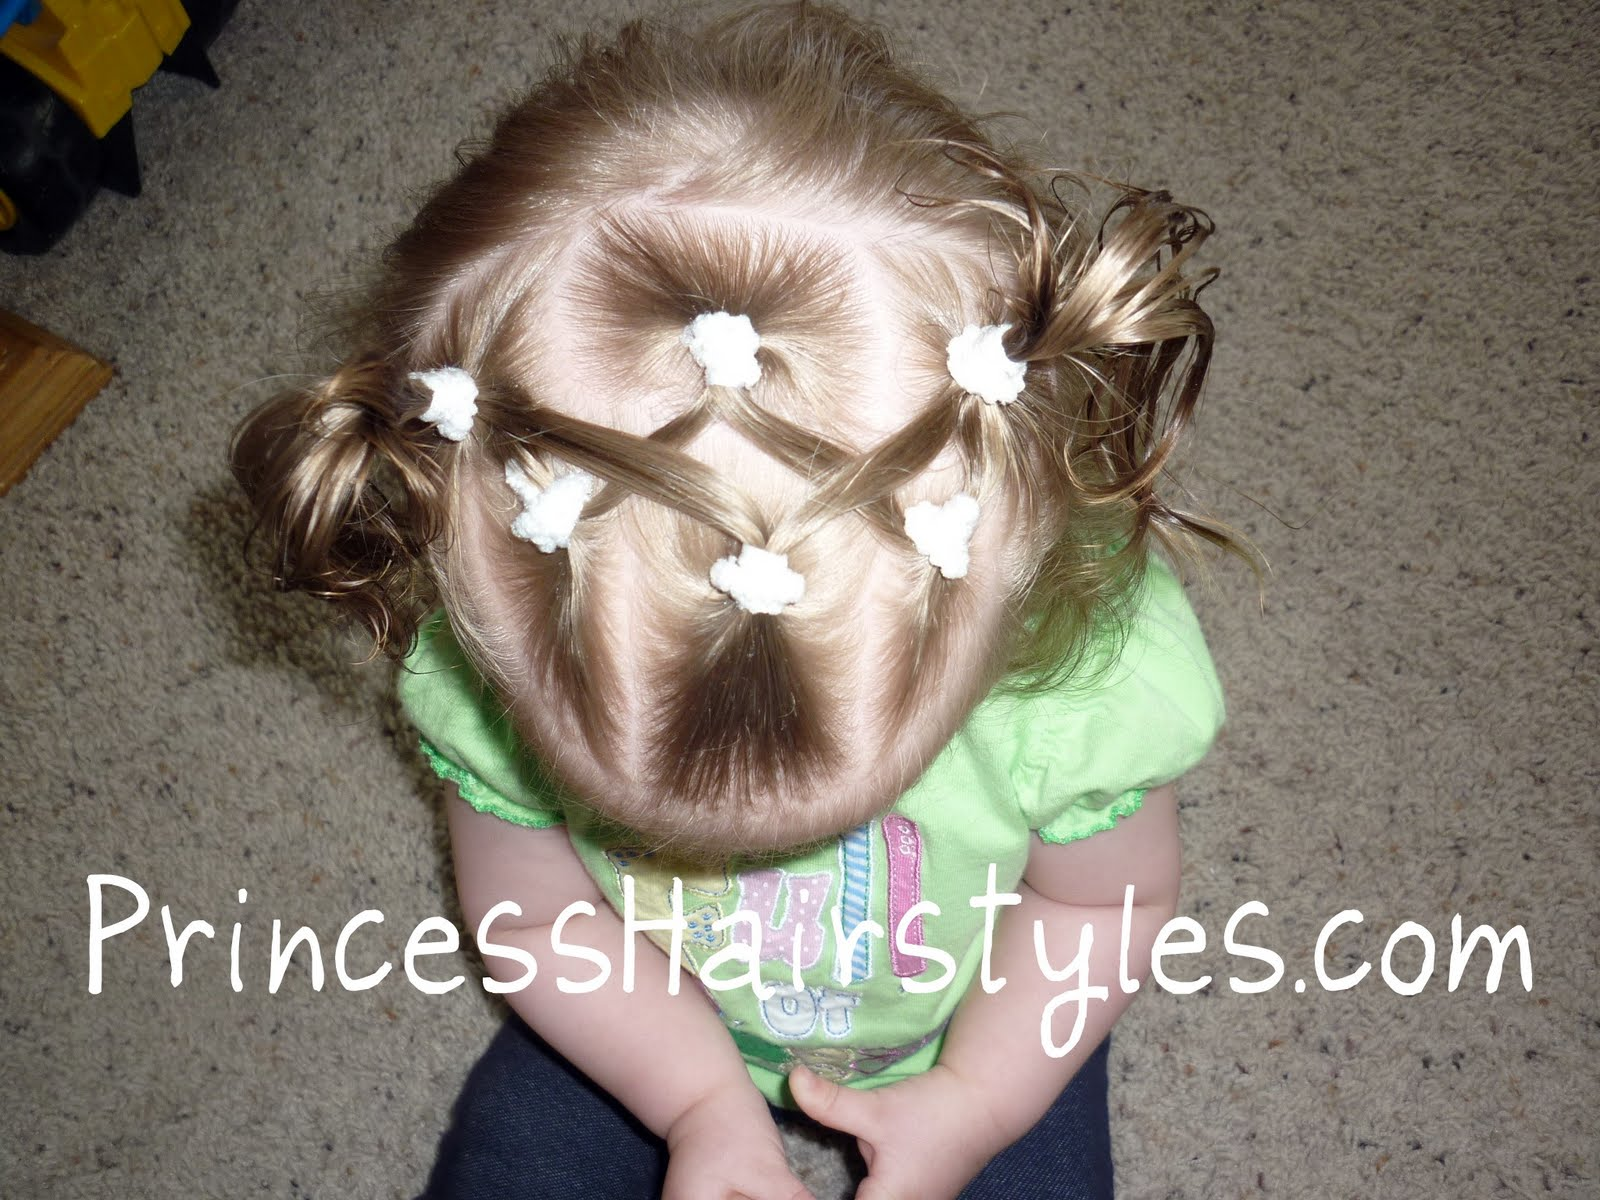 Hairstyles For Babies m o n i q u em mixed kids hairstylesnatural kids hairstylesbaby Criss Cross Hairstyle For Babies